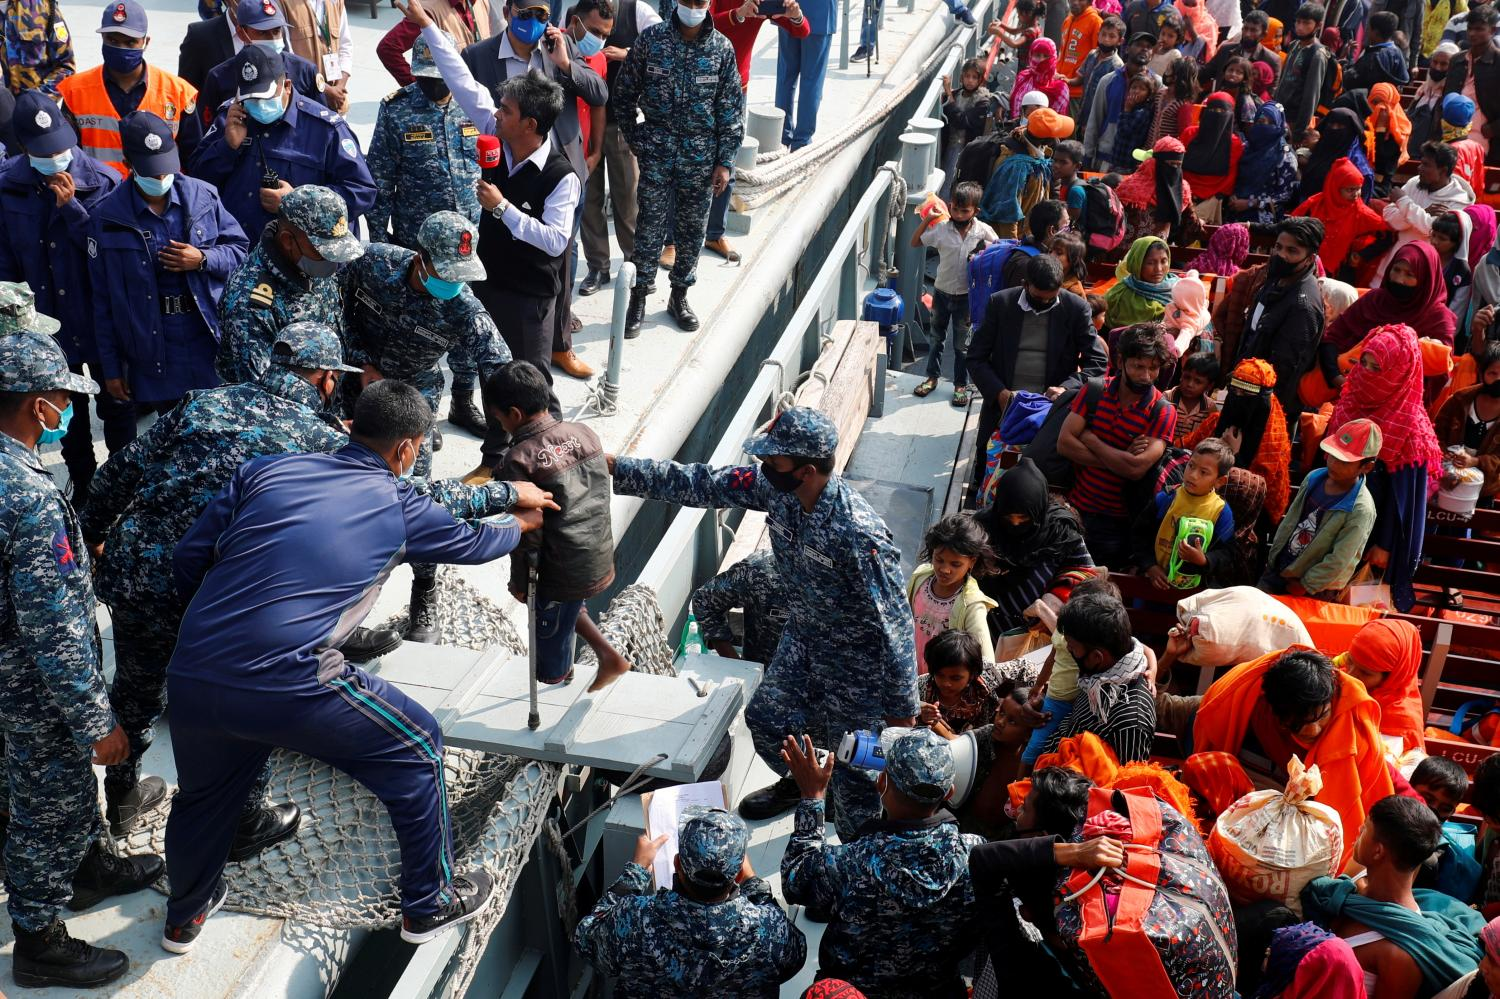 Bangladesh naval personnel help a disabled Rohingya refugee child get off a navy vessel as they arrive at Bhasan Char Island in Noakhali district, Bangladesh, in this 2020 file photo. (Reuters photo)